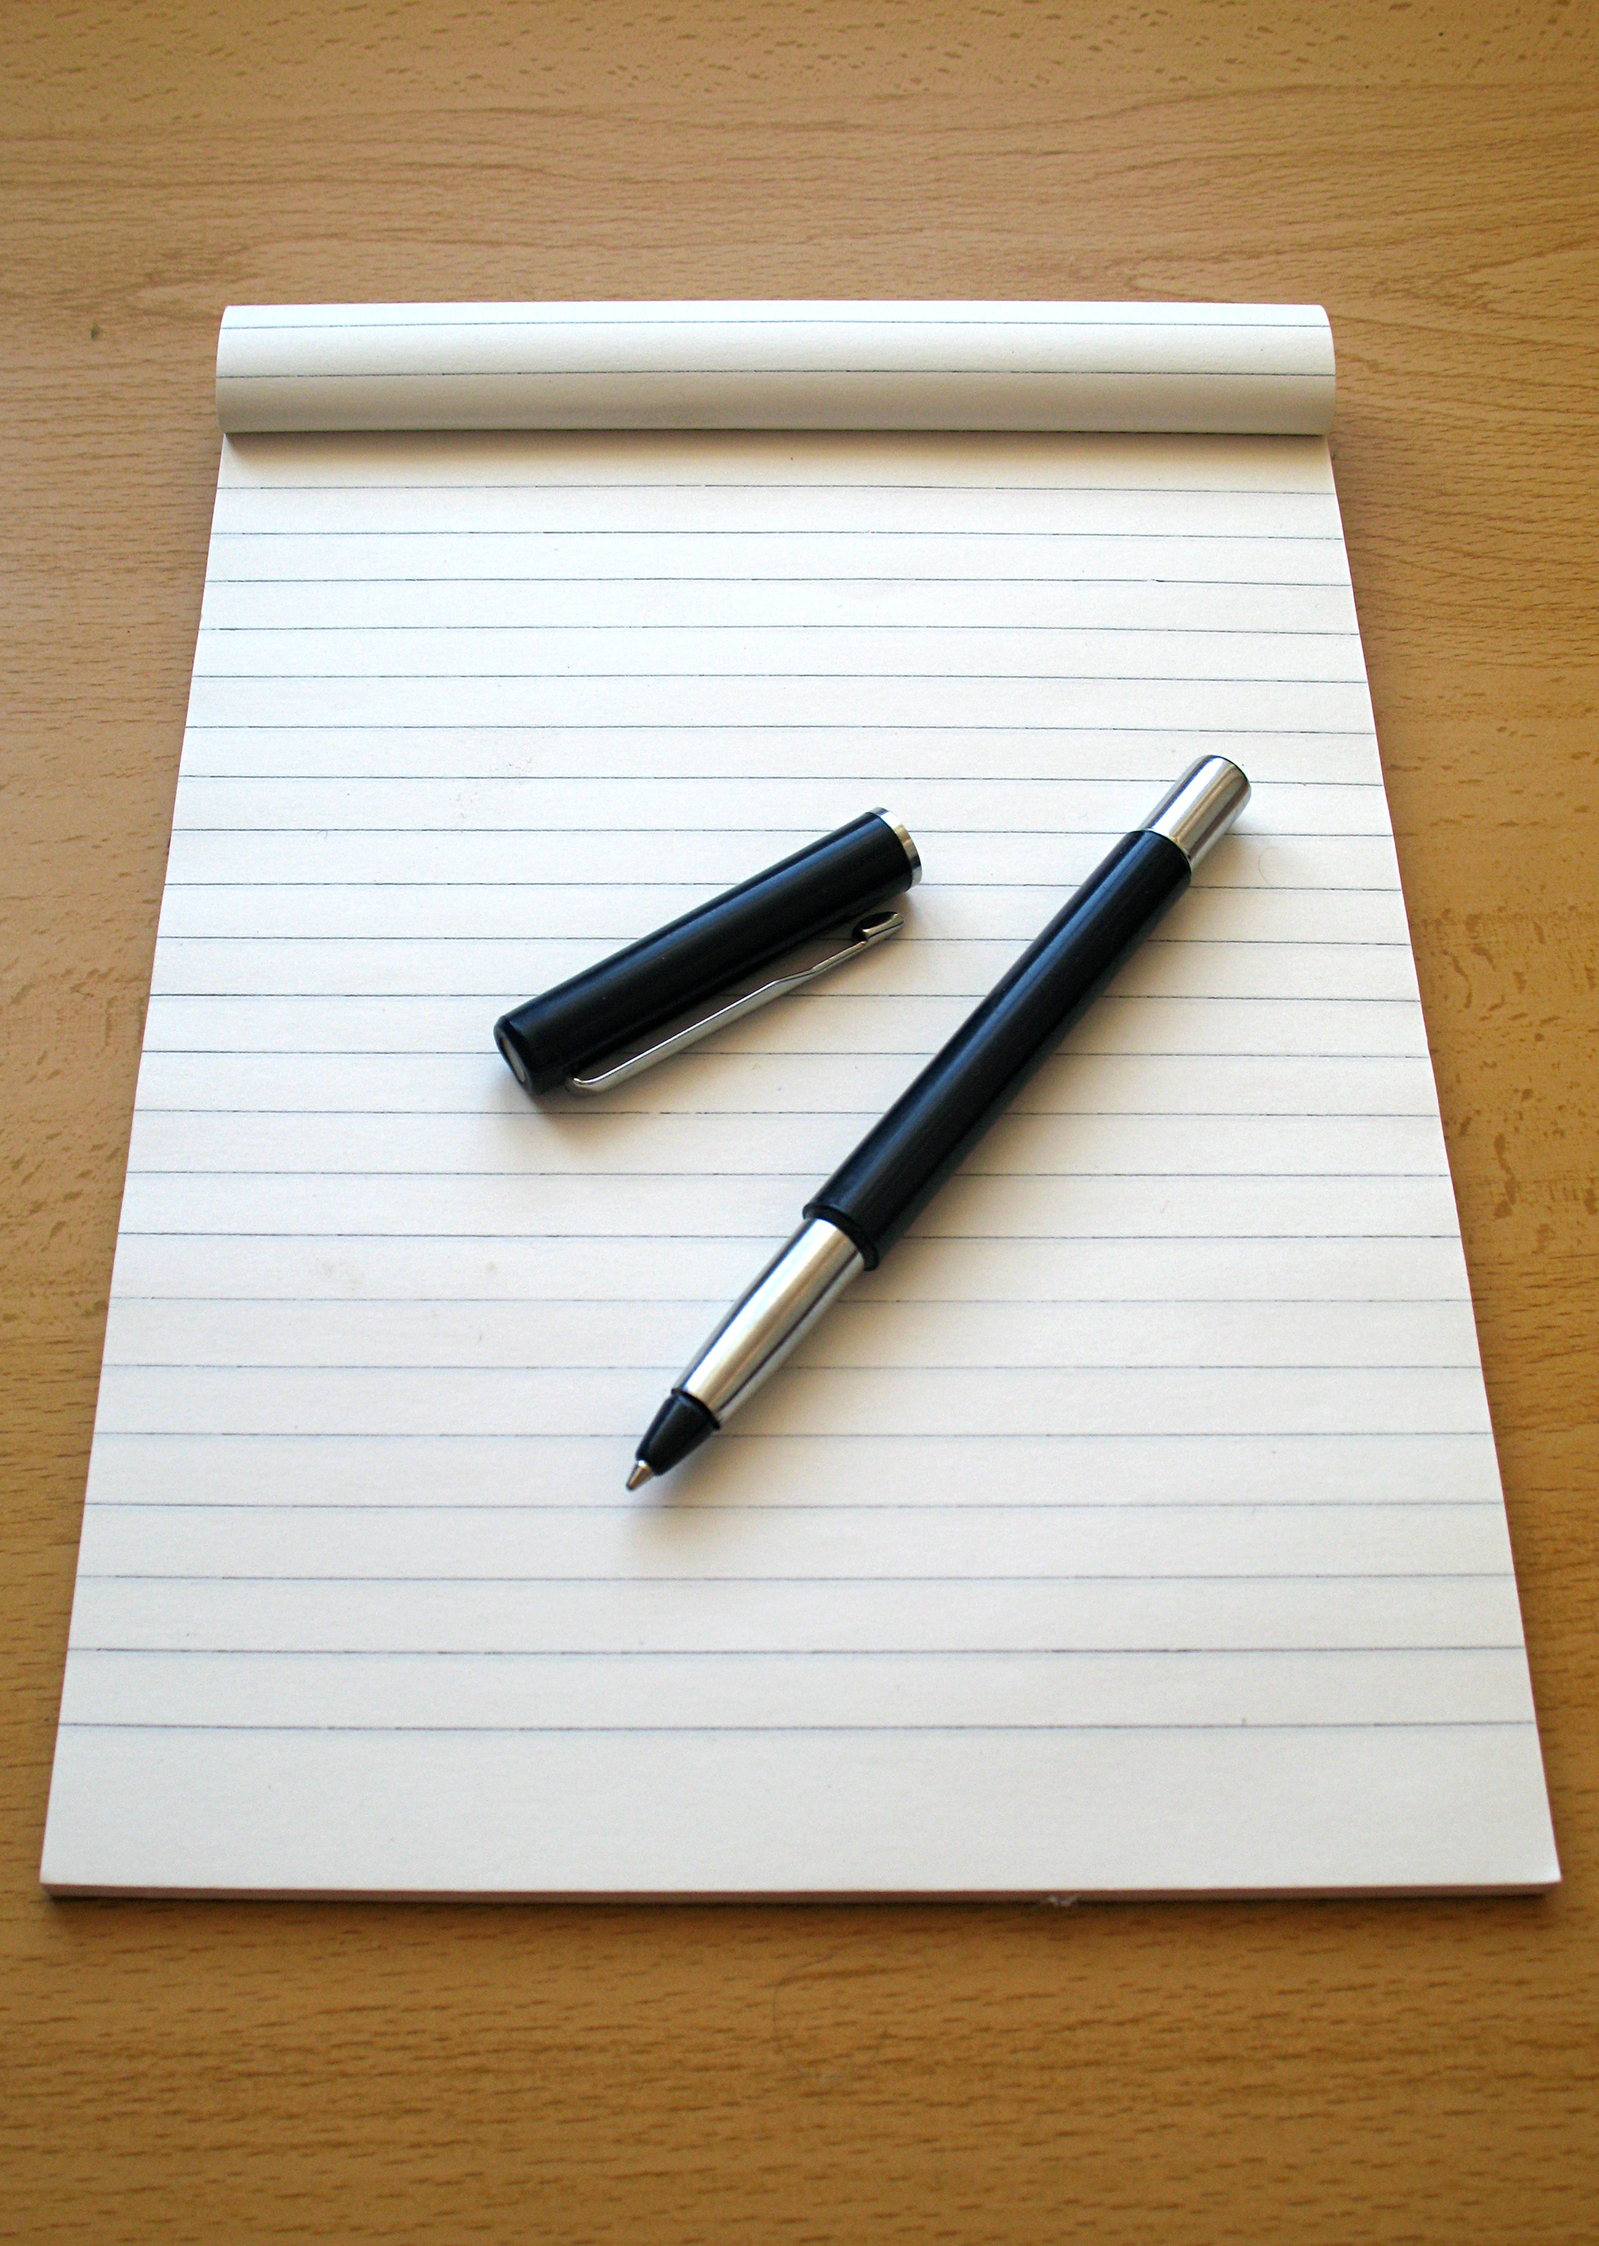 pen and blank lined paper